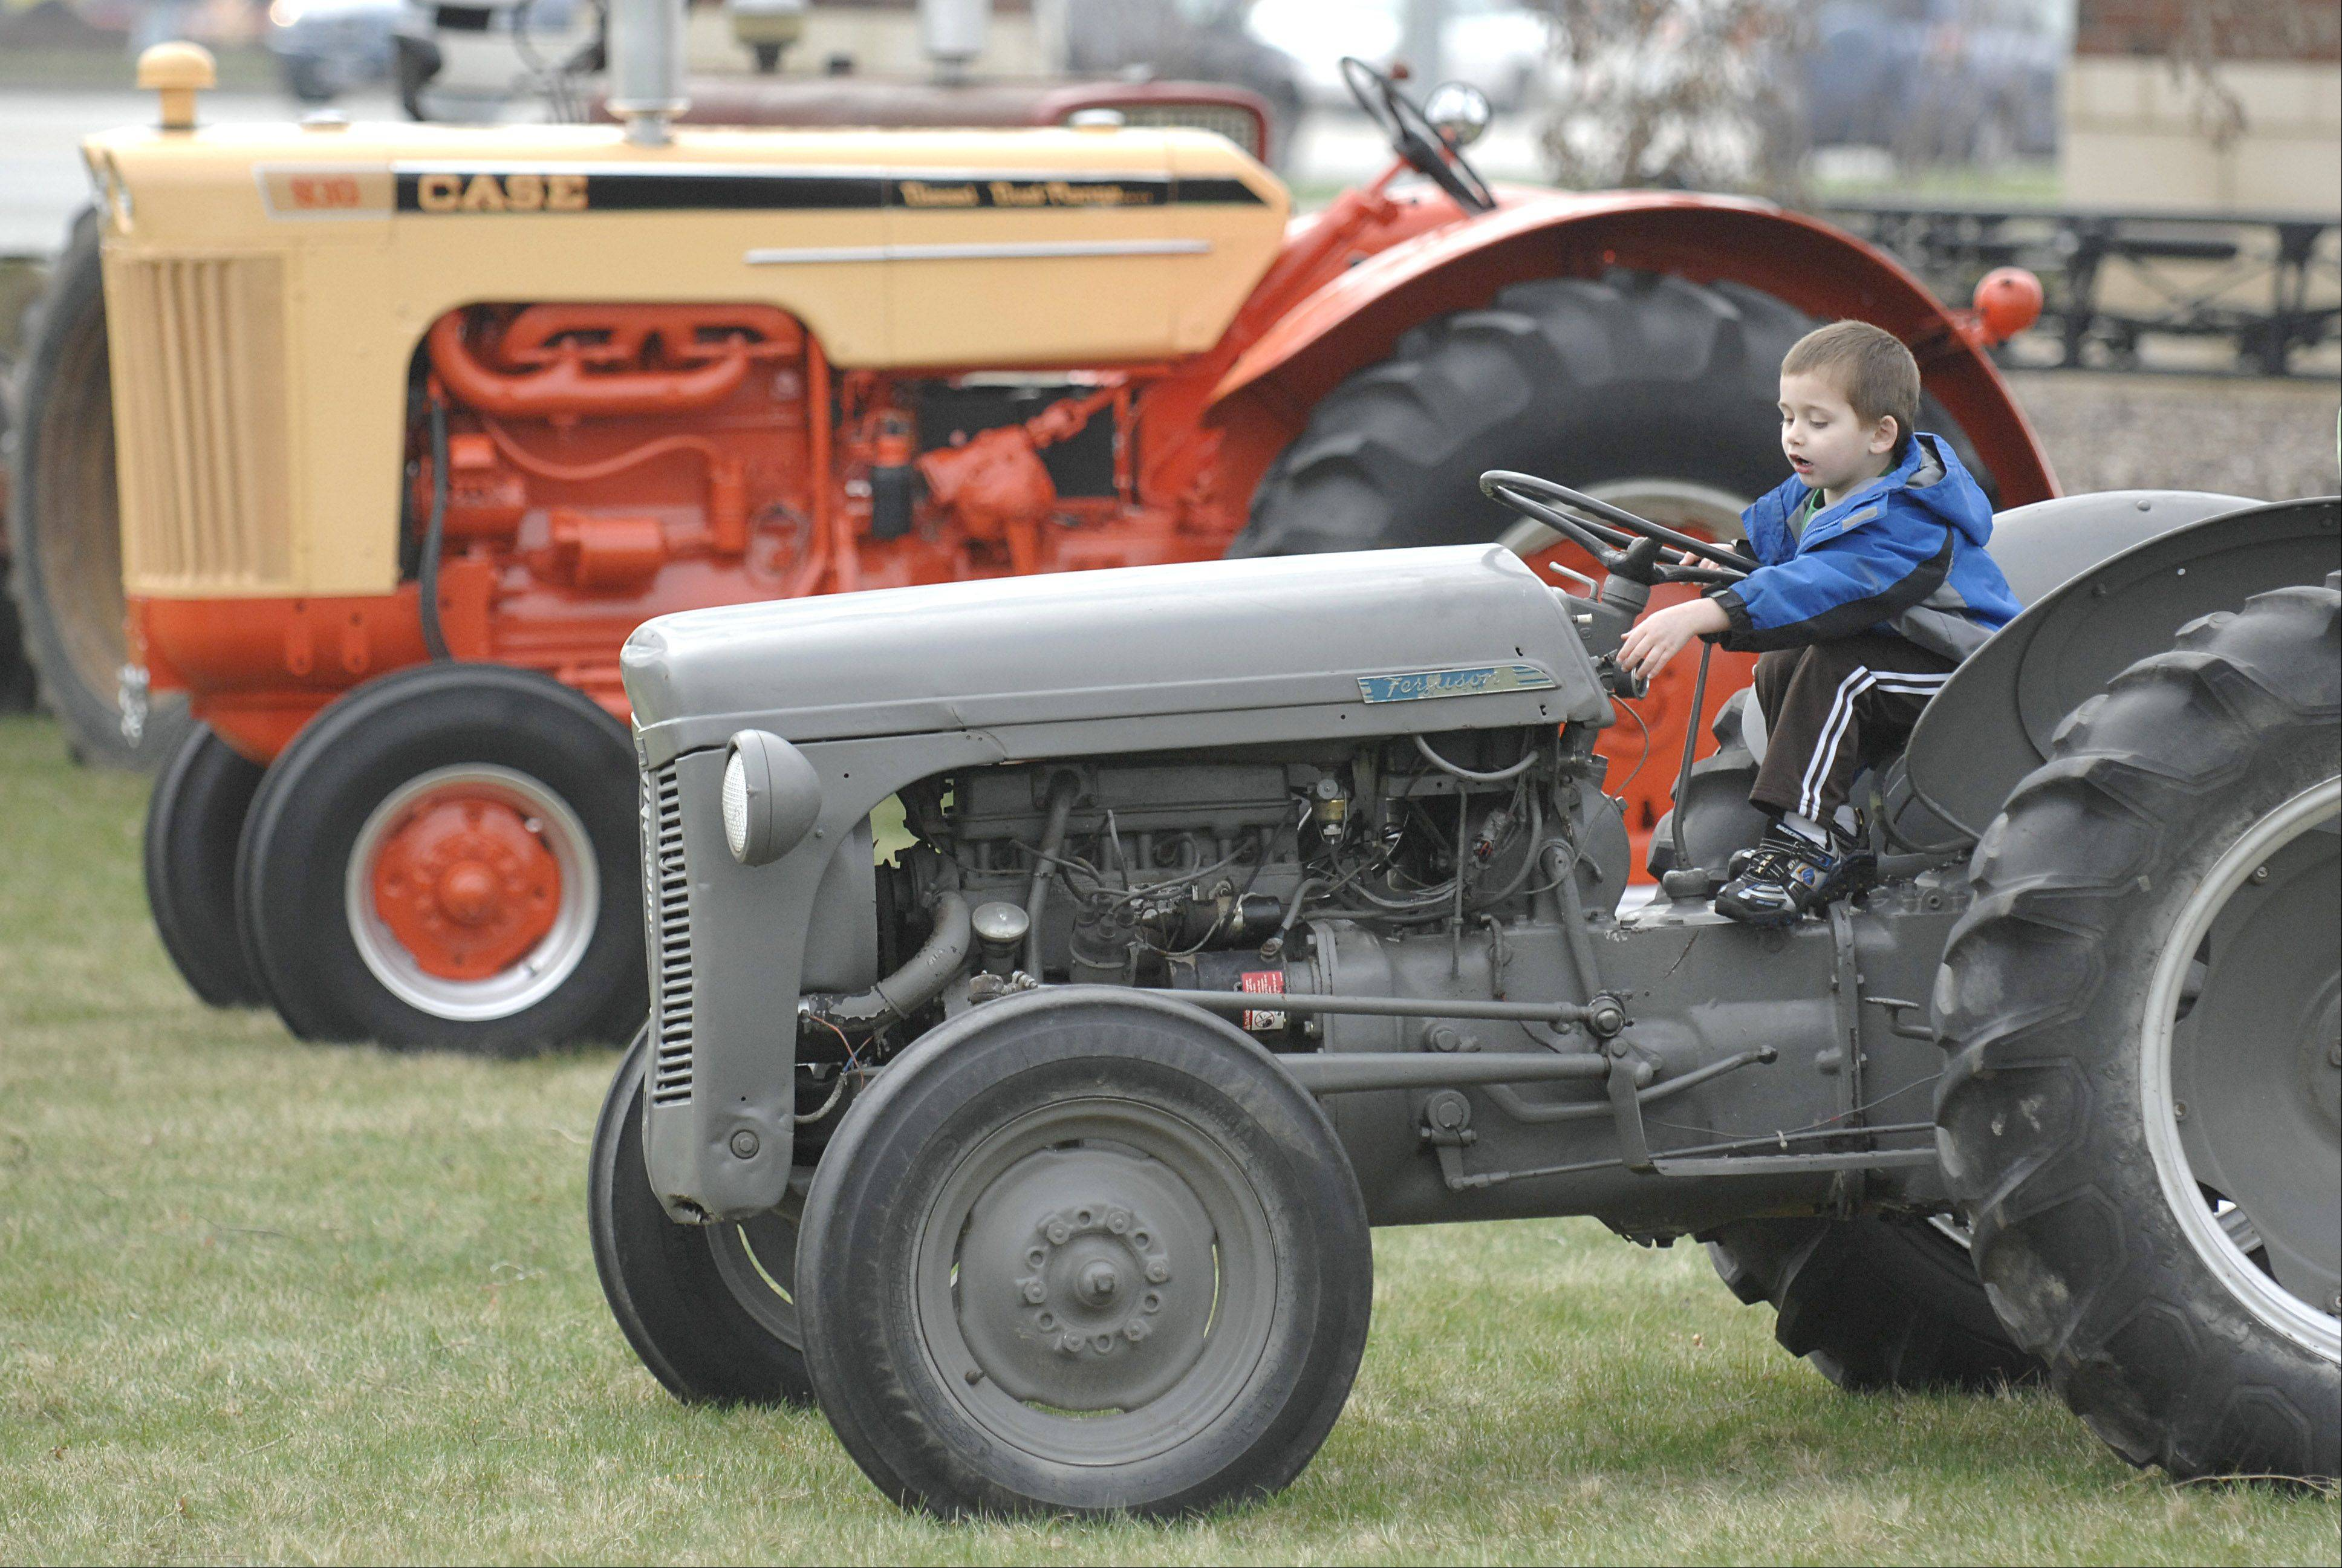 Kids can sit in the seat of an antique tractor, ride pedal tractors, see farm animals and more at the eighth annual Touch-A-Tractor at the Kane County Farm Bureau in St. Charles.